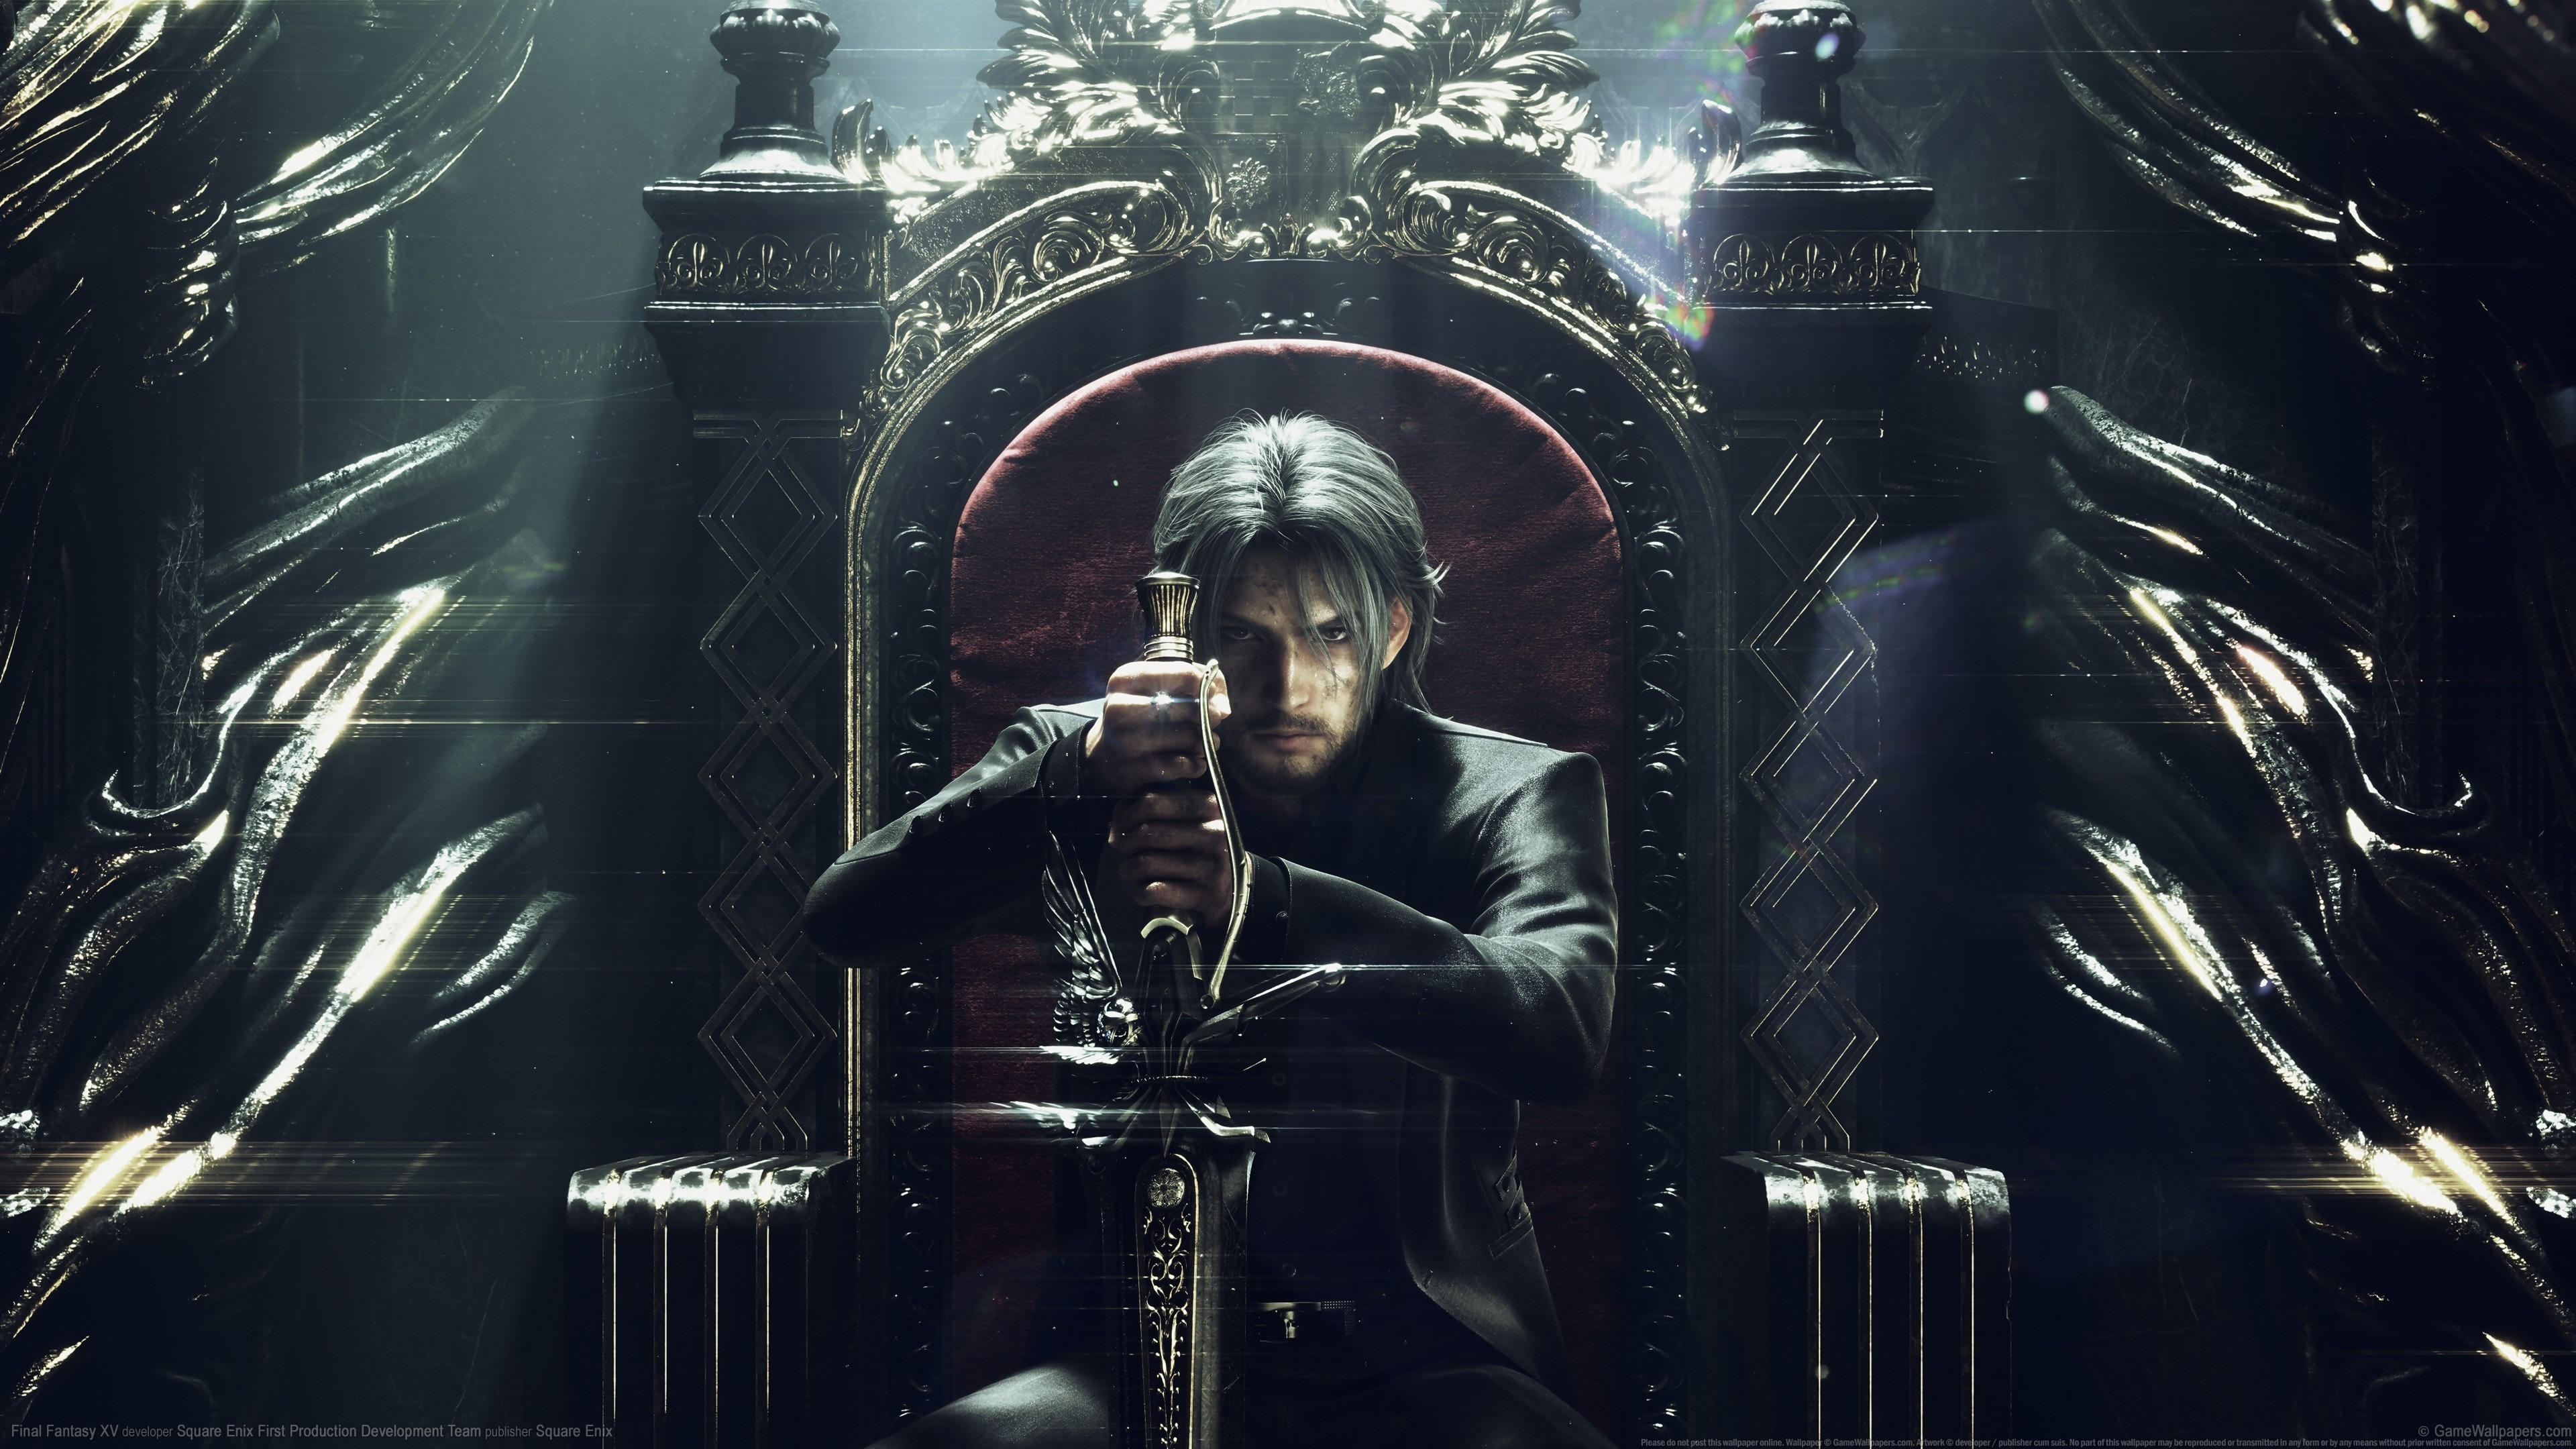 Download 3840x2400 Wallpaper Final Fantasy Noctis Video